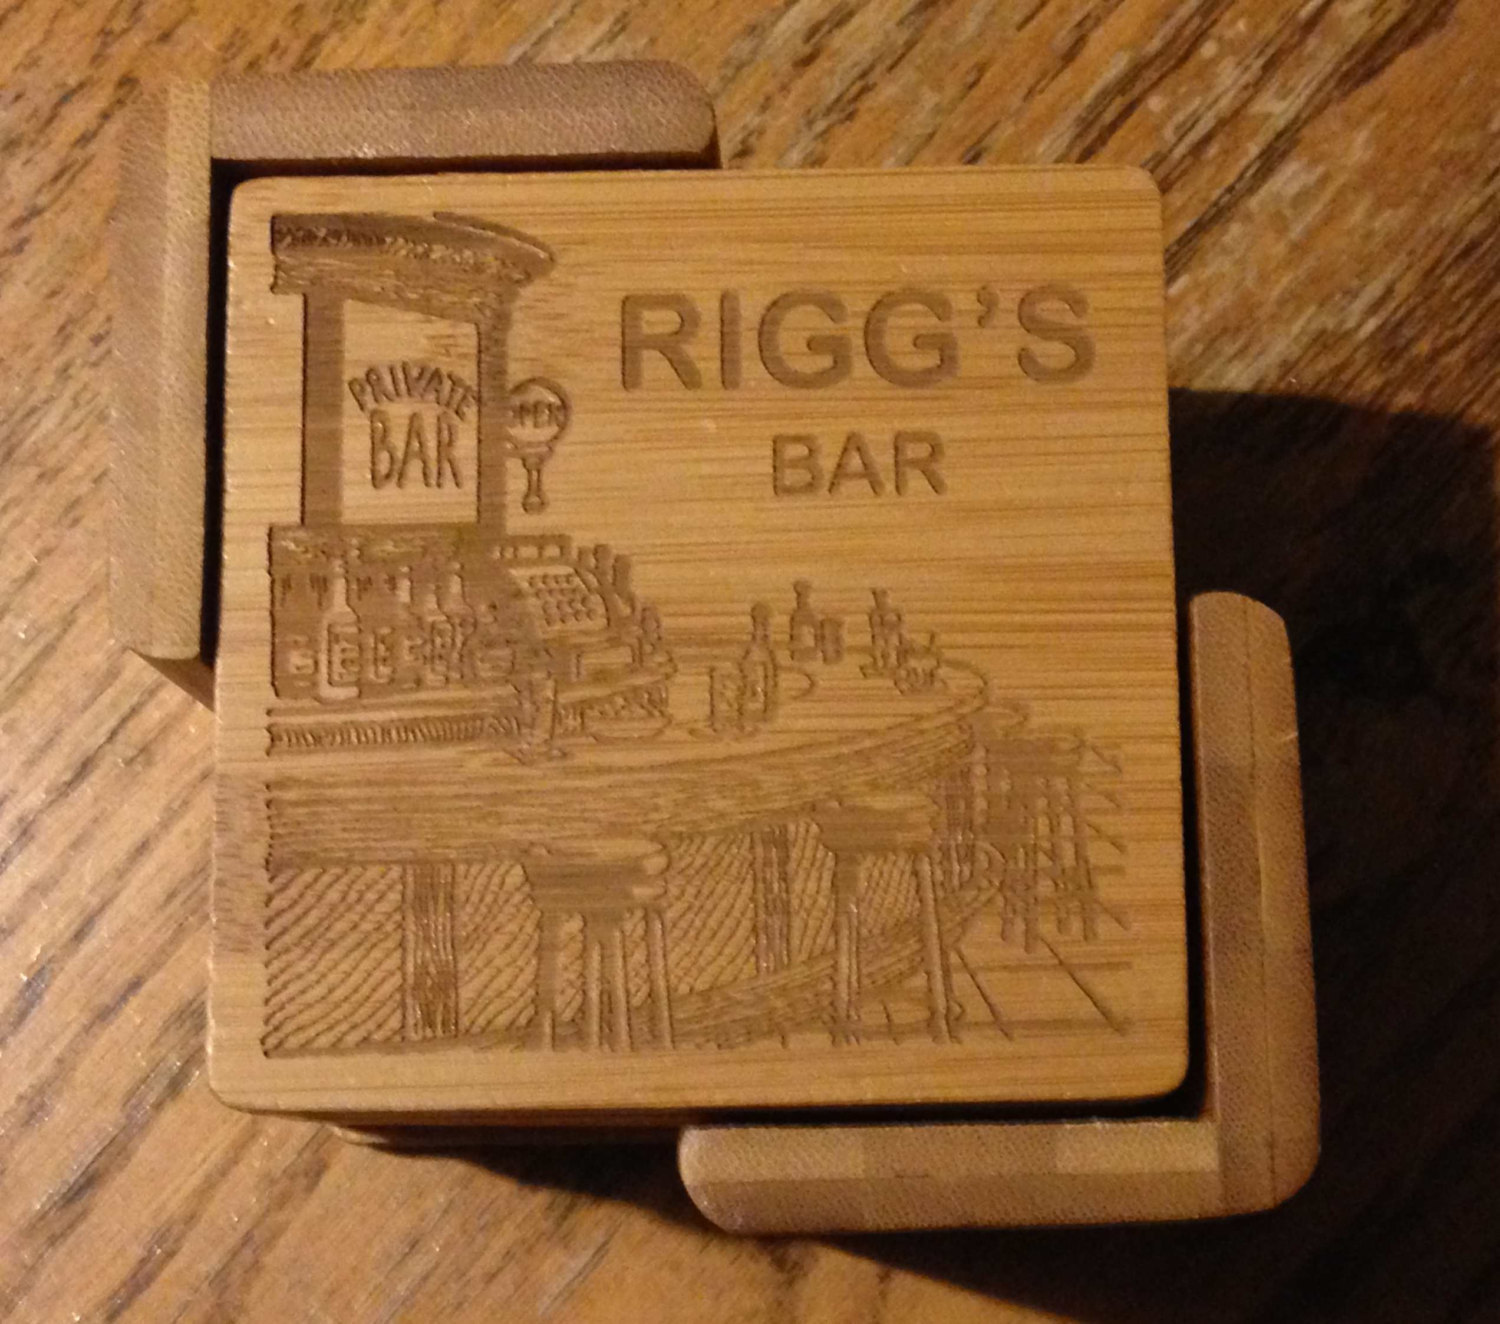 Man Cave Gifts Coupon Code : Personalized bar coaster set great gift